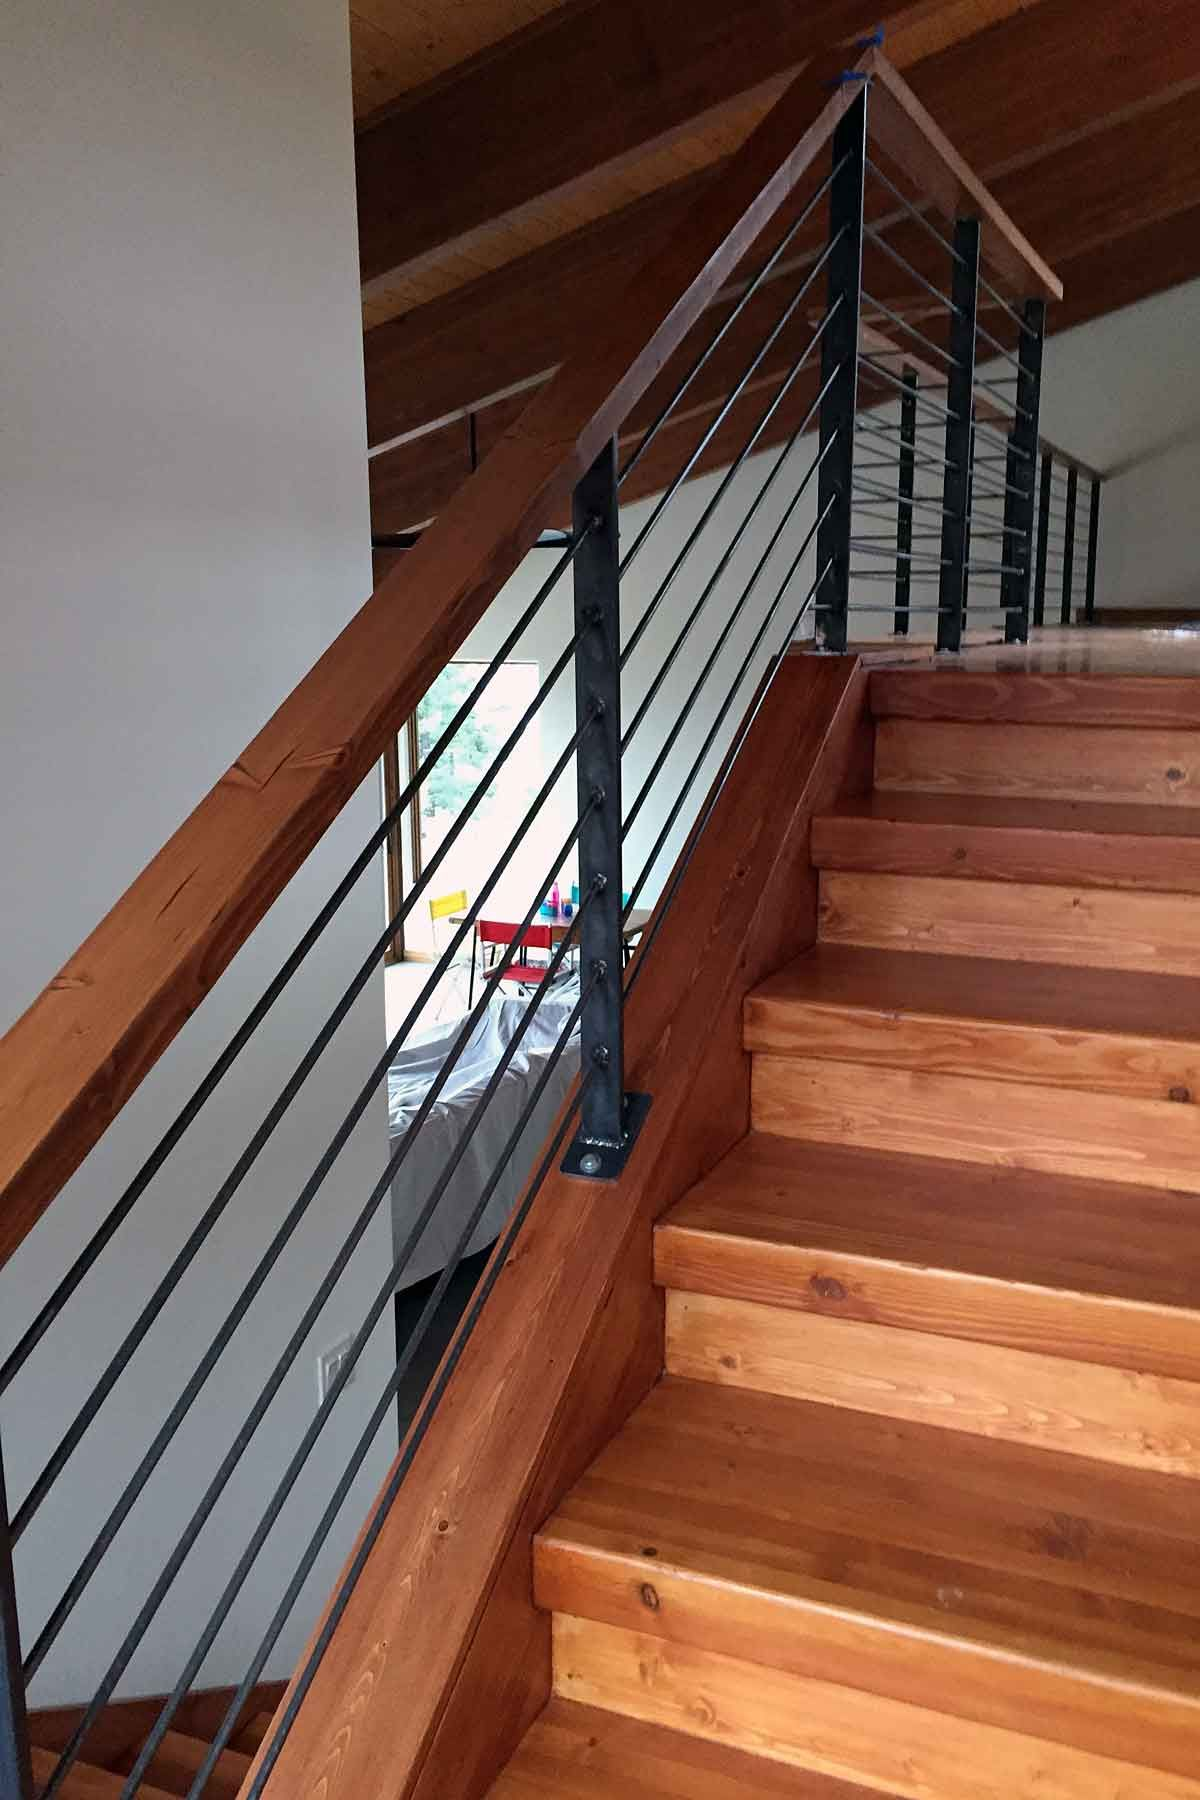 We Have Really Added An Amazing Amount Of Handrail To Our